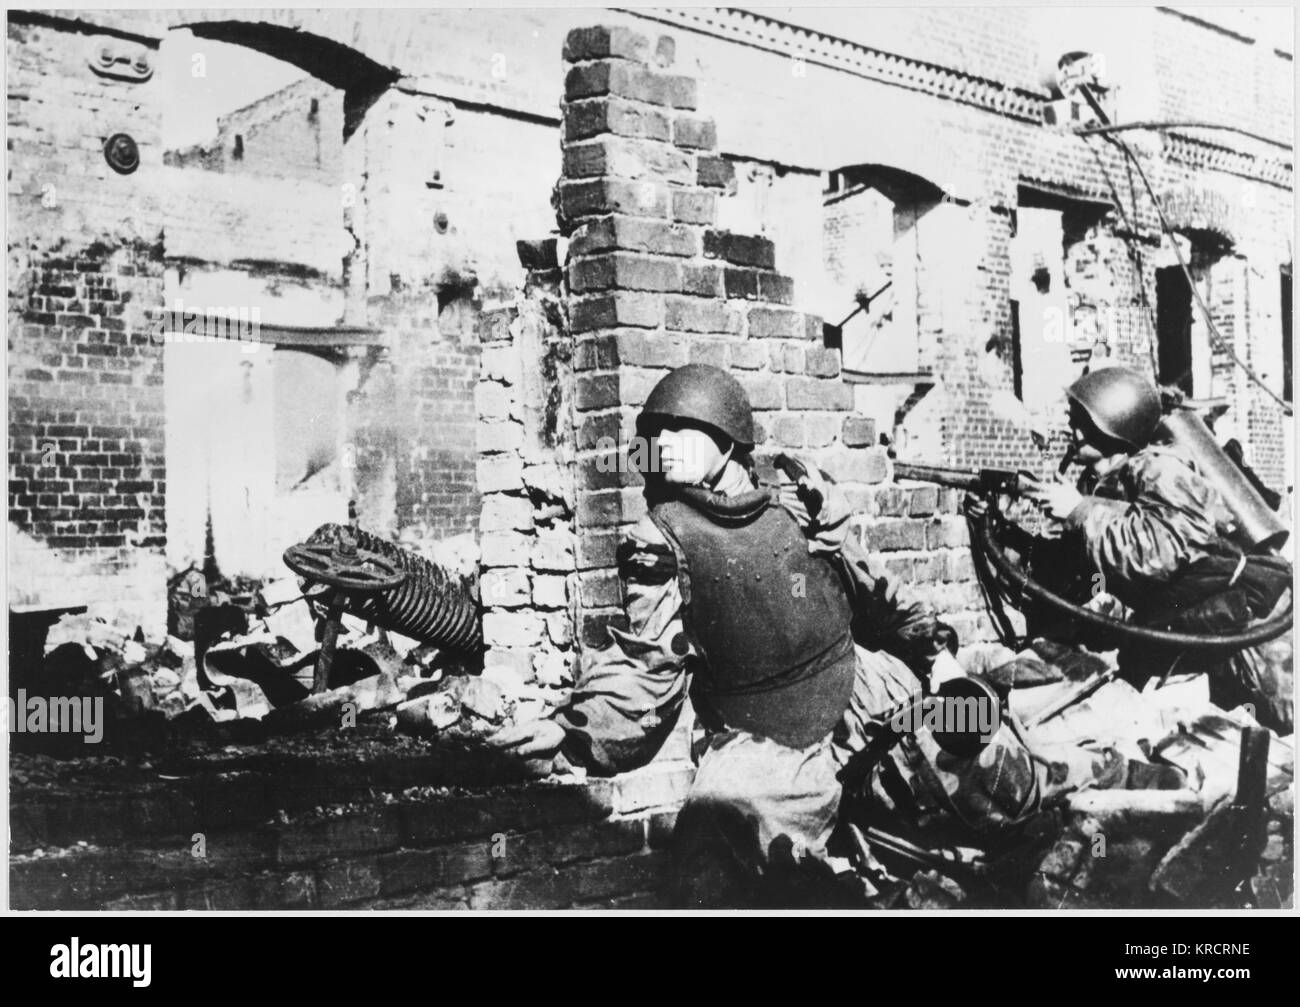 House to house fighting during the bitter battle amongst the ruins of the battered city of Stalingrad (Volgograd), USSR. Date: 1942-1943 Stock Photo